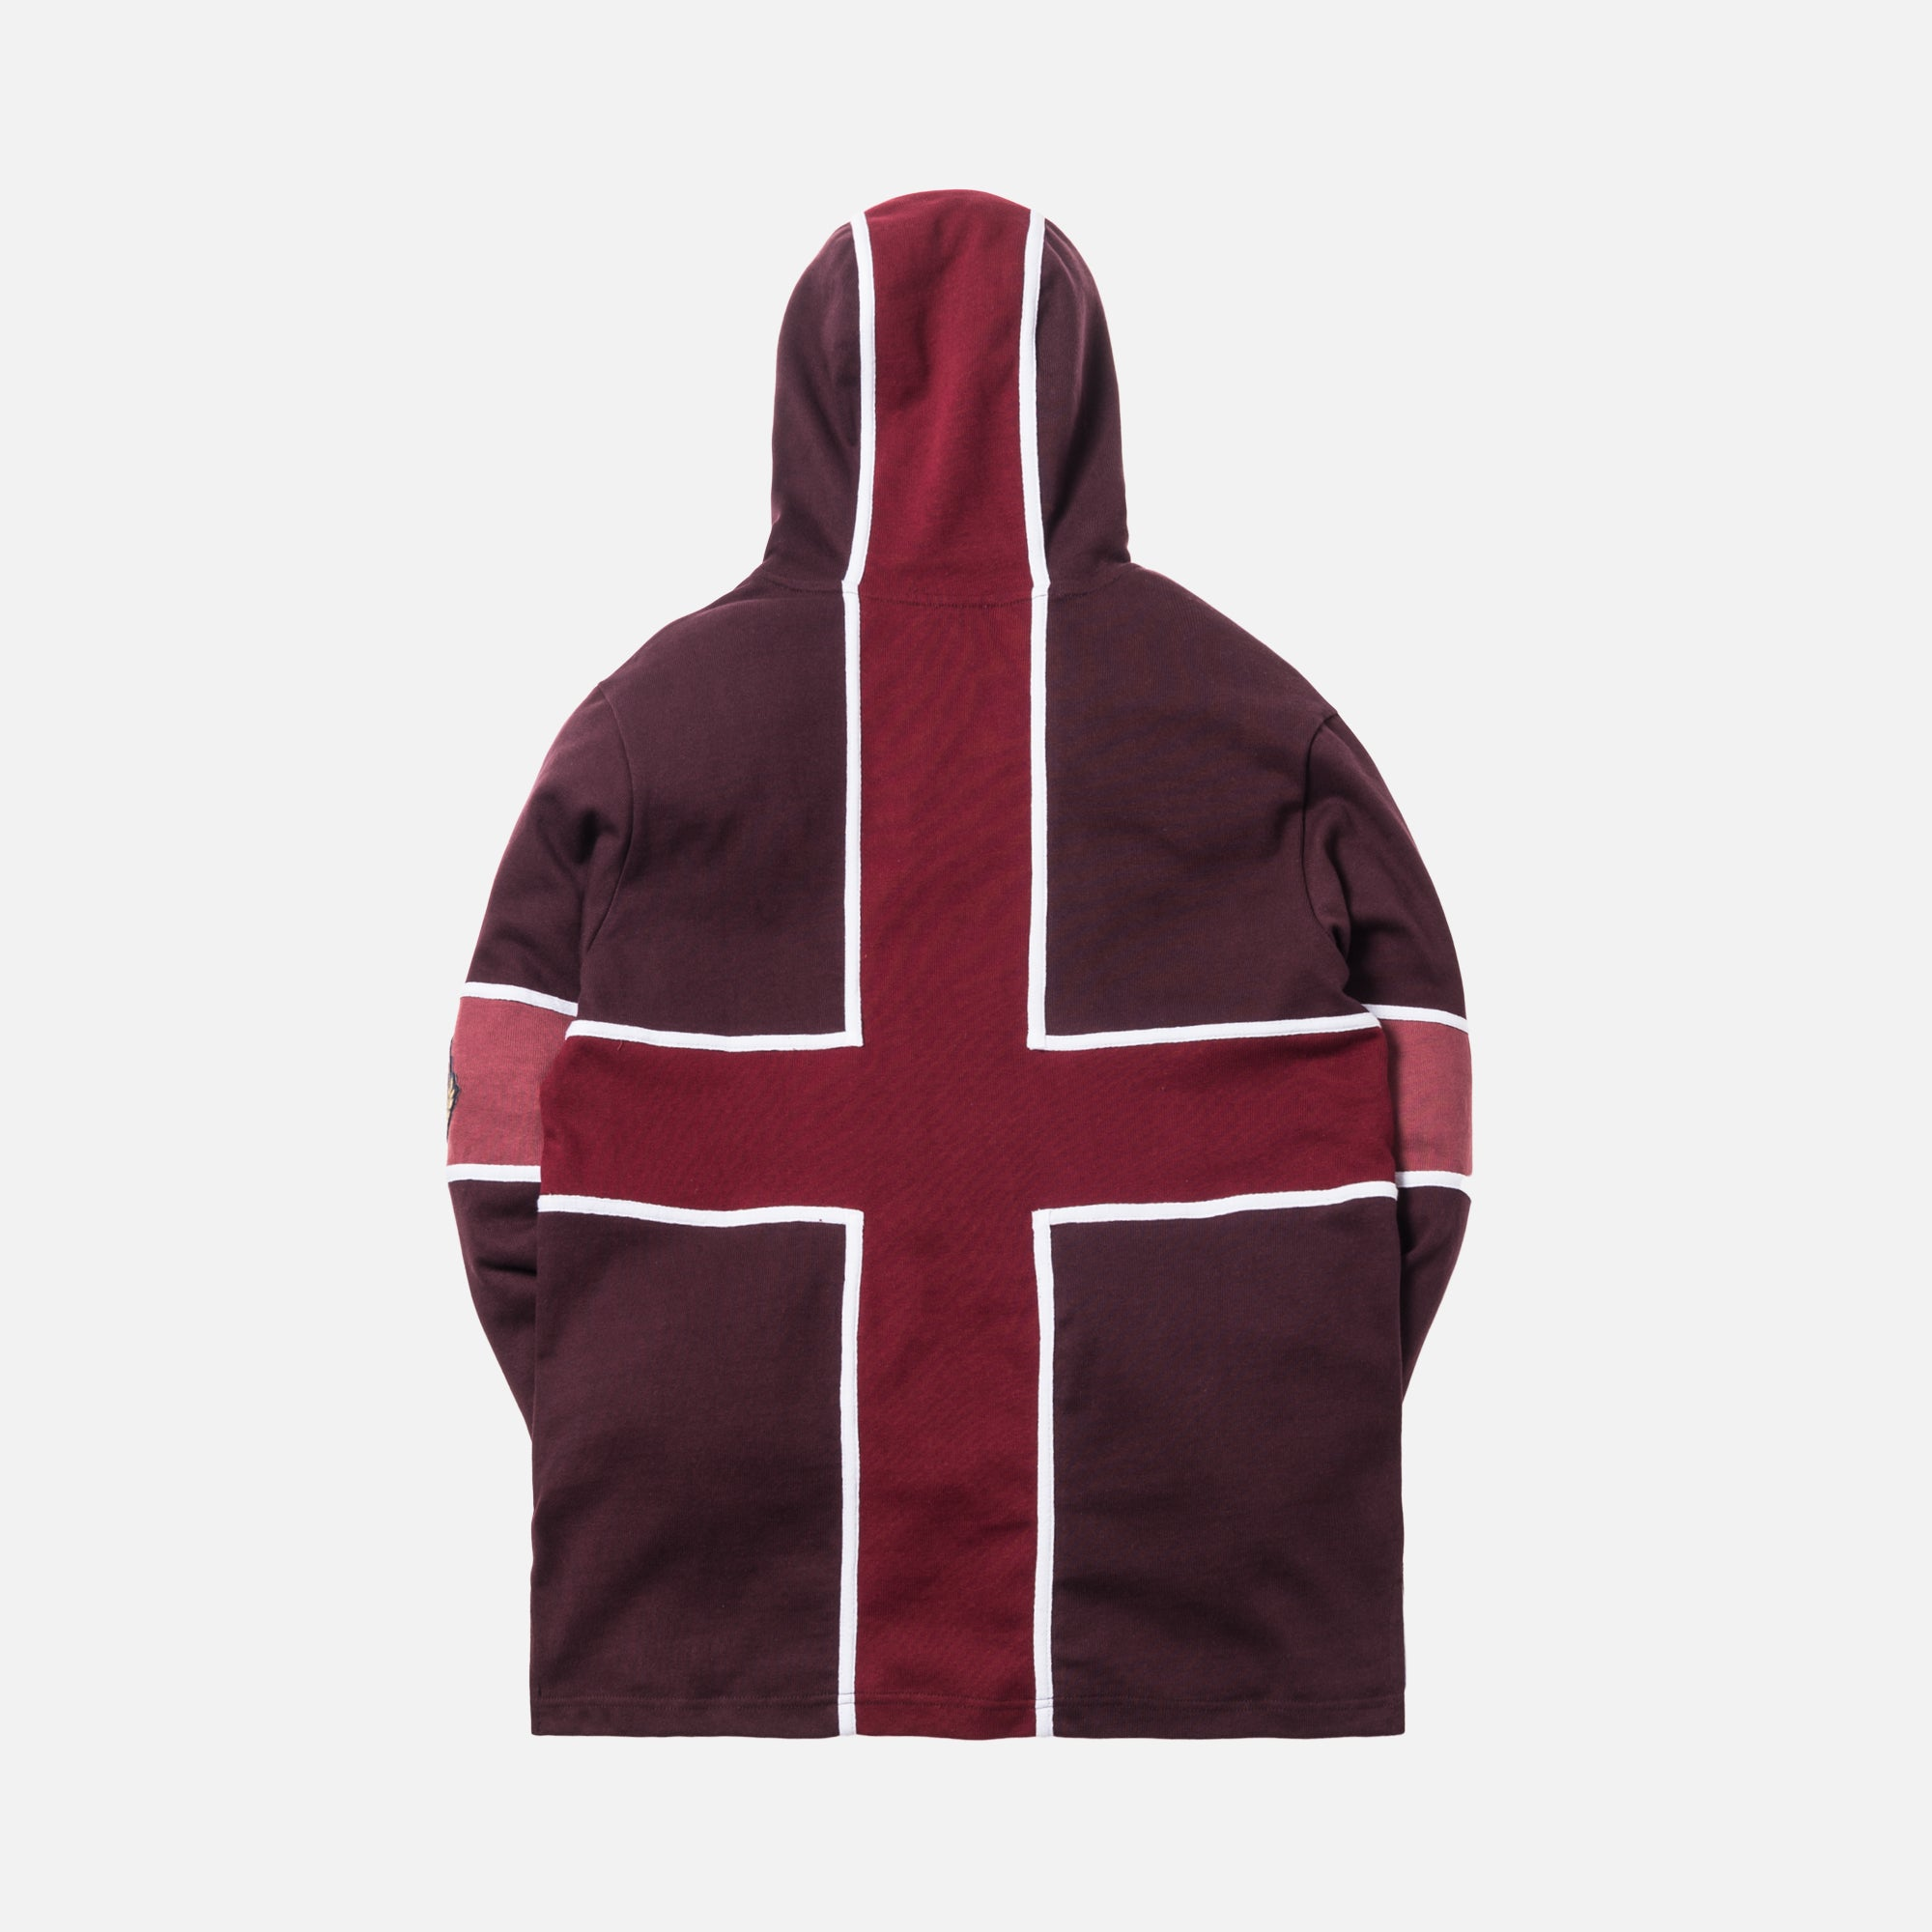 Kith Hooded Rugby - Burgundy